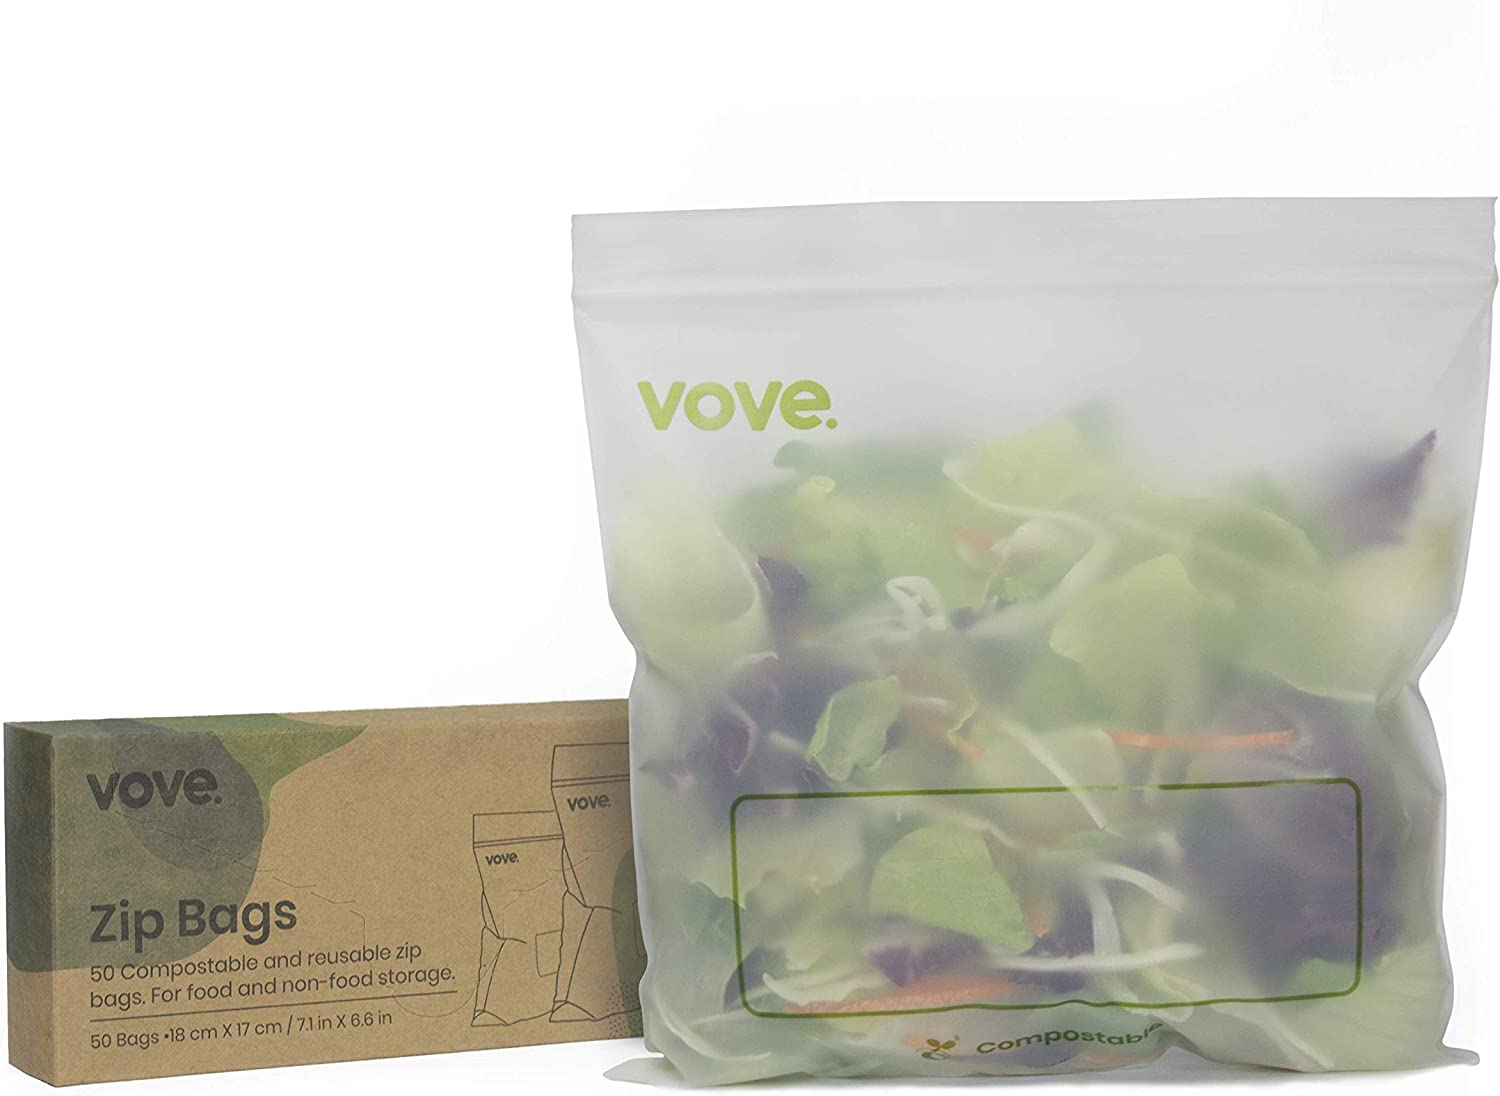 Vove | Compostable Biodegradable Zip Bags | 50 Count | Sandwich & Snacks | Eco-Friendly | Resealable Storage Bags |